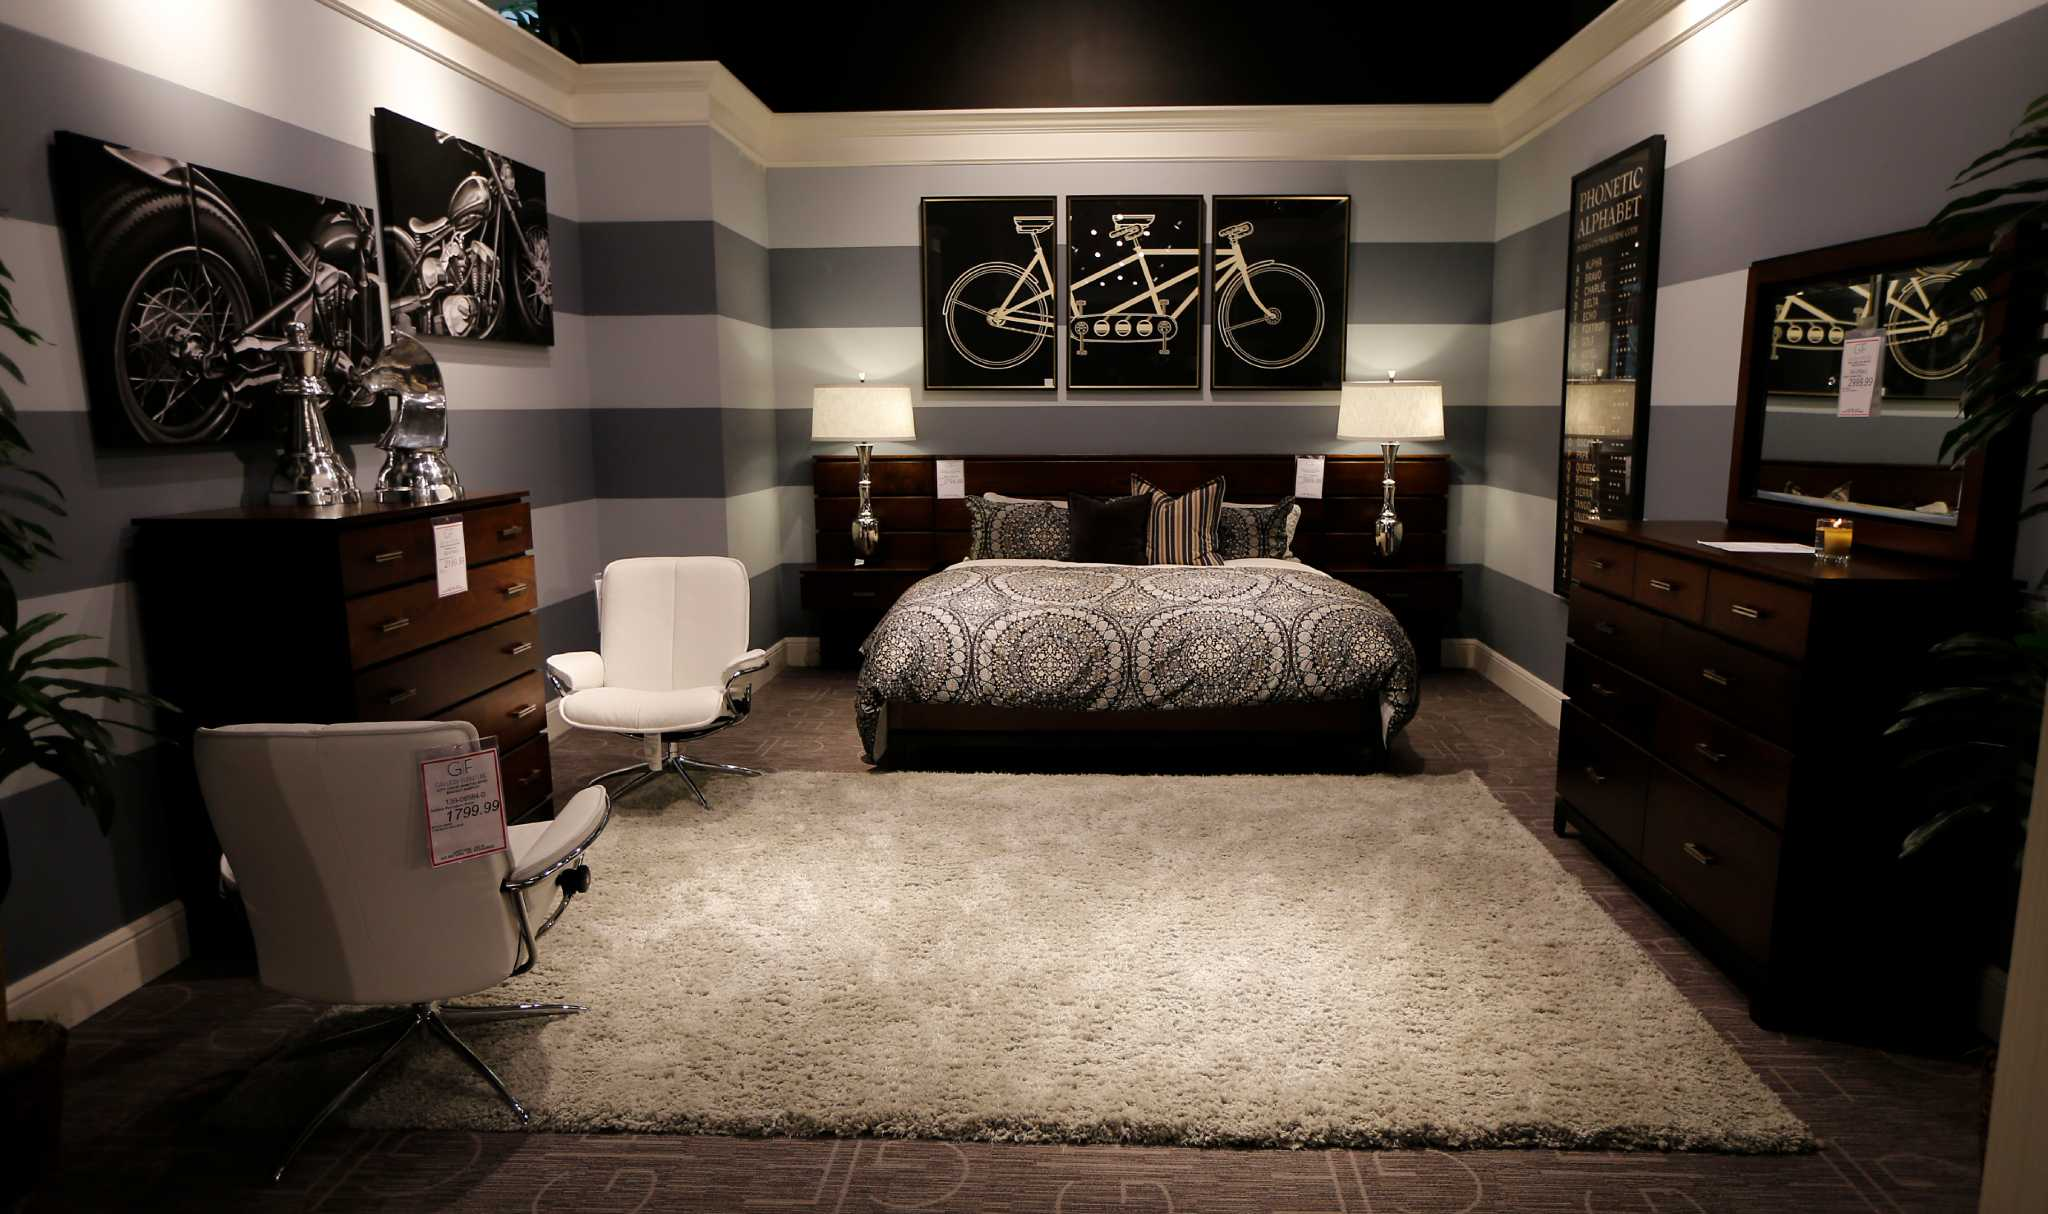 gallery furniture designer offers redecorating tips houston chronicle - Houston Bedroom Furniture